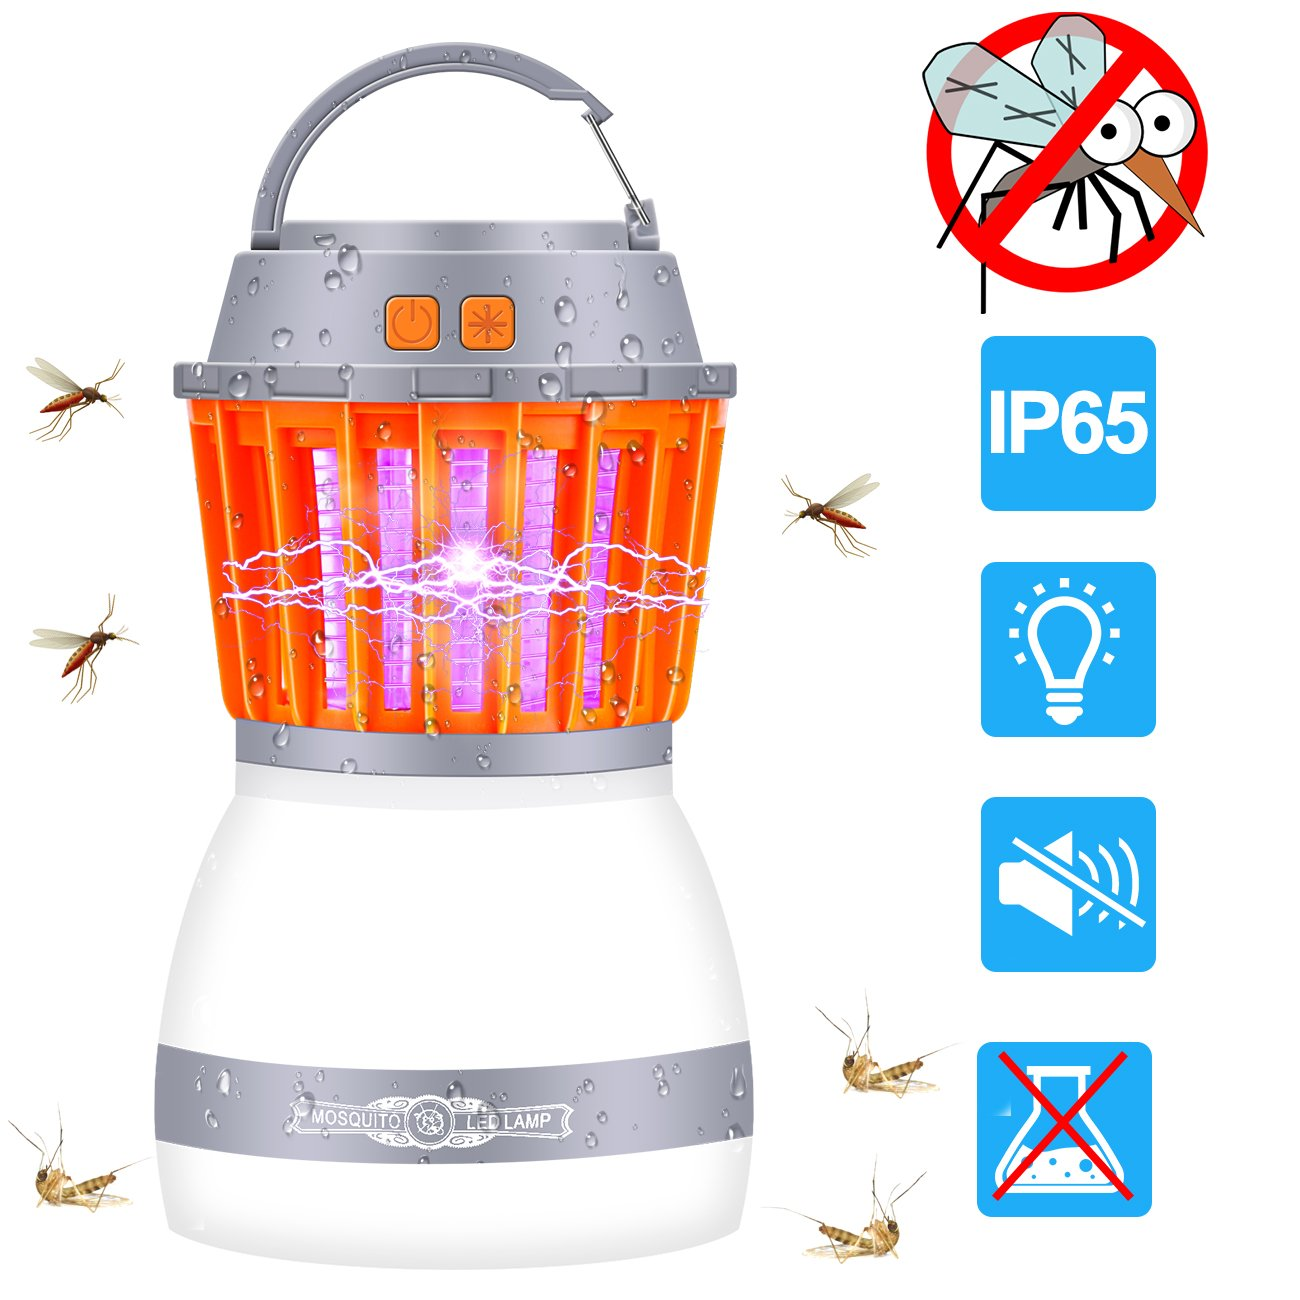 MINGER Bug Zapper & Camping Lantern, 2 in 1 Electronic Mosquito Insect Killer LED Light Night Lamp, Waterproof USB Rechargeable Portable for Indoor Outdoor Home Traveling Hiking